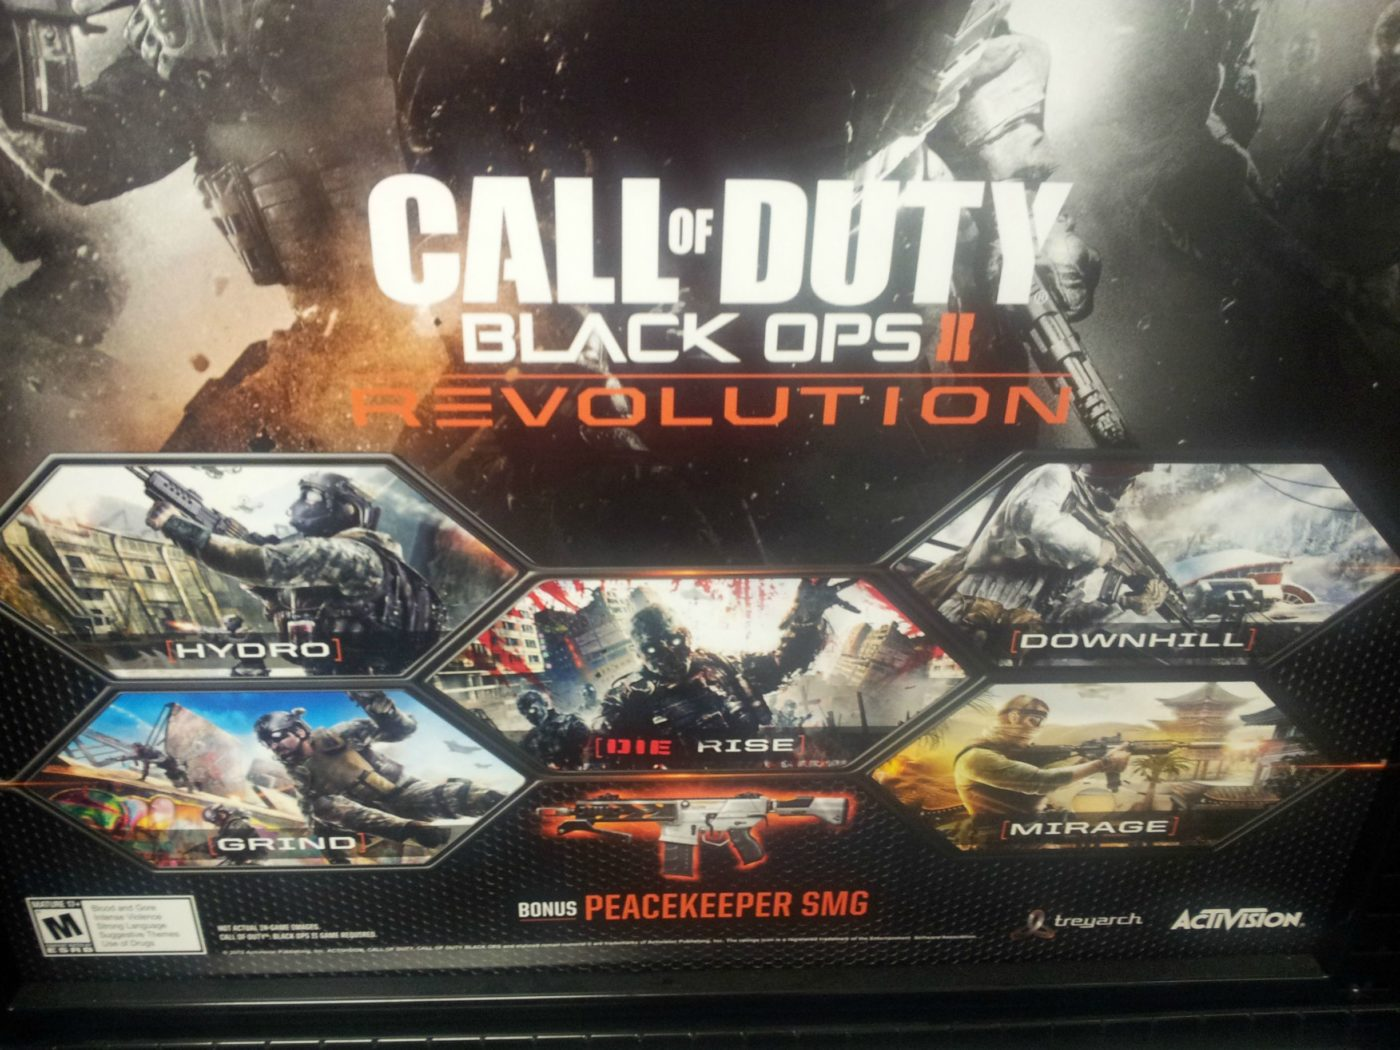 black ops 2 promotion poster reveals revolution map pack and weapon dlc mp1st. Black Bedroom Furniture Sets. Home Design Ideas